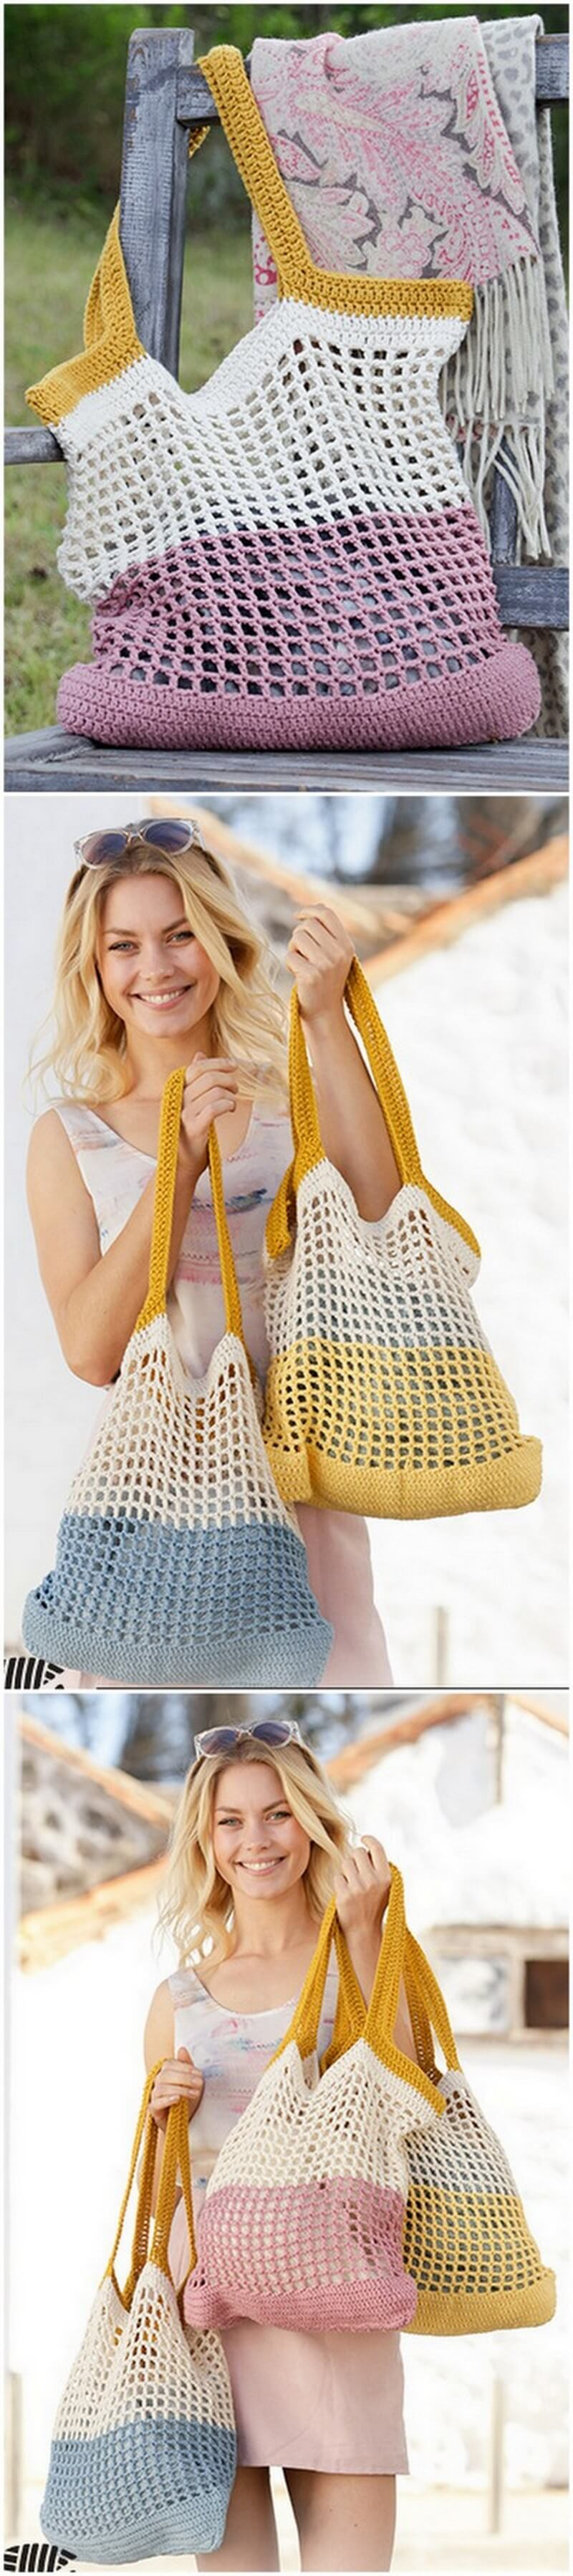 Crochet Bag Pattern (31)